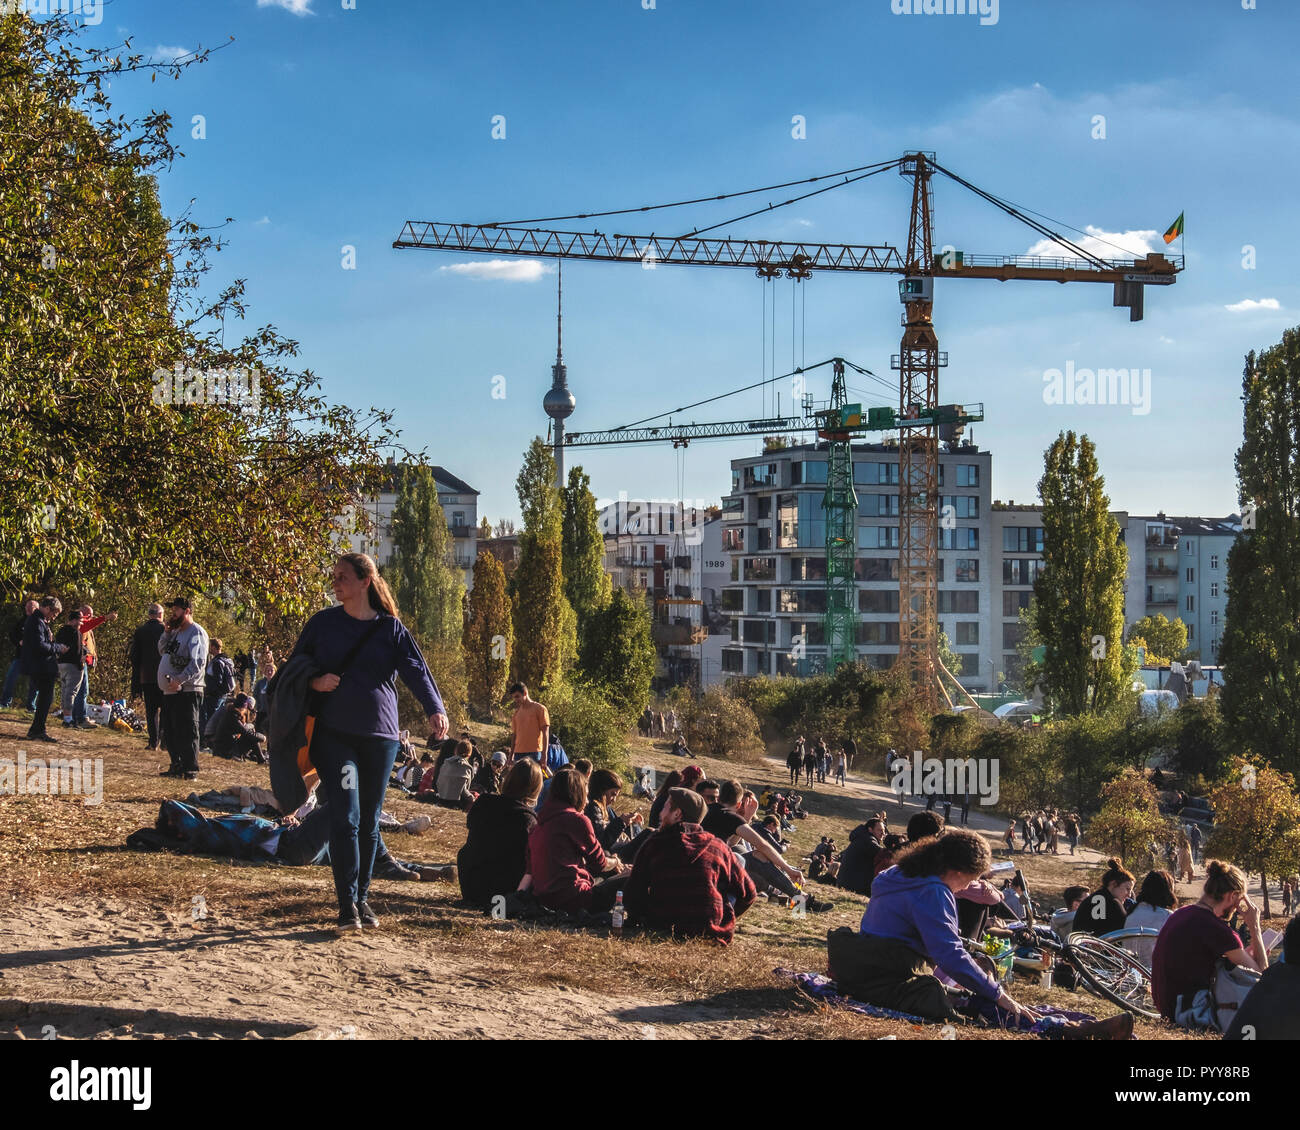 Berlin Mauer Park. The entry point for a tunnel-boring machine that is excavating a 650 metre long storage channel for waste water that will be connec - Stock Image